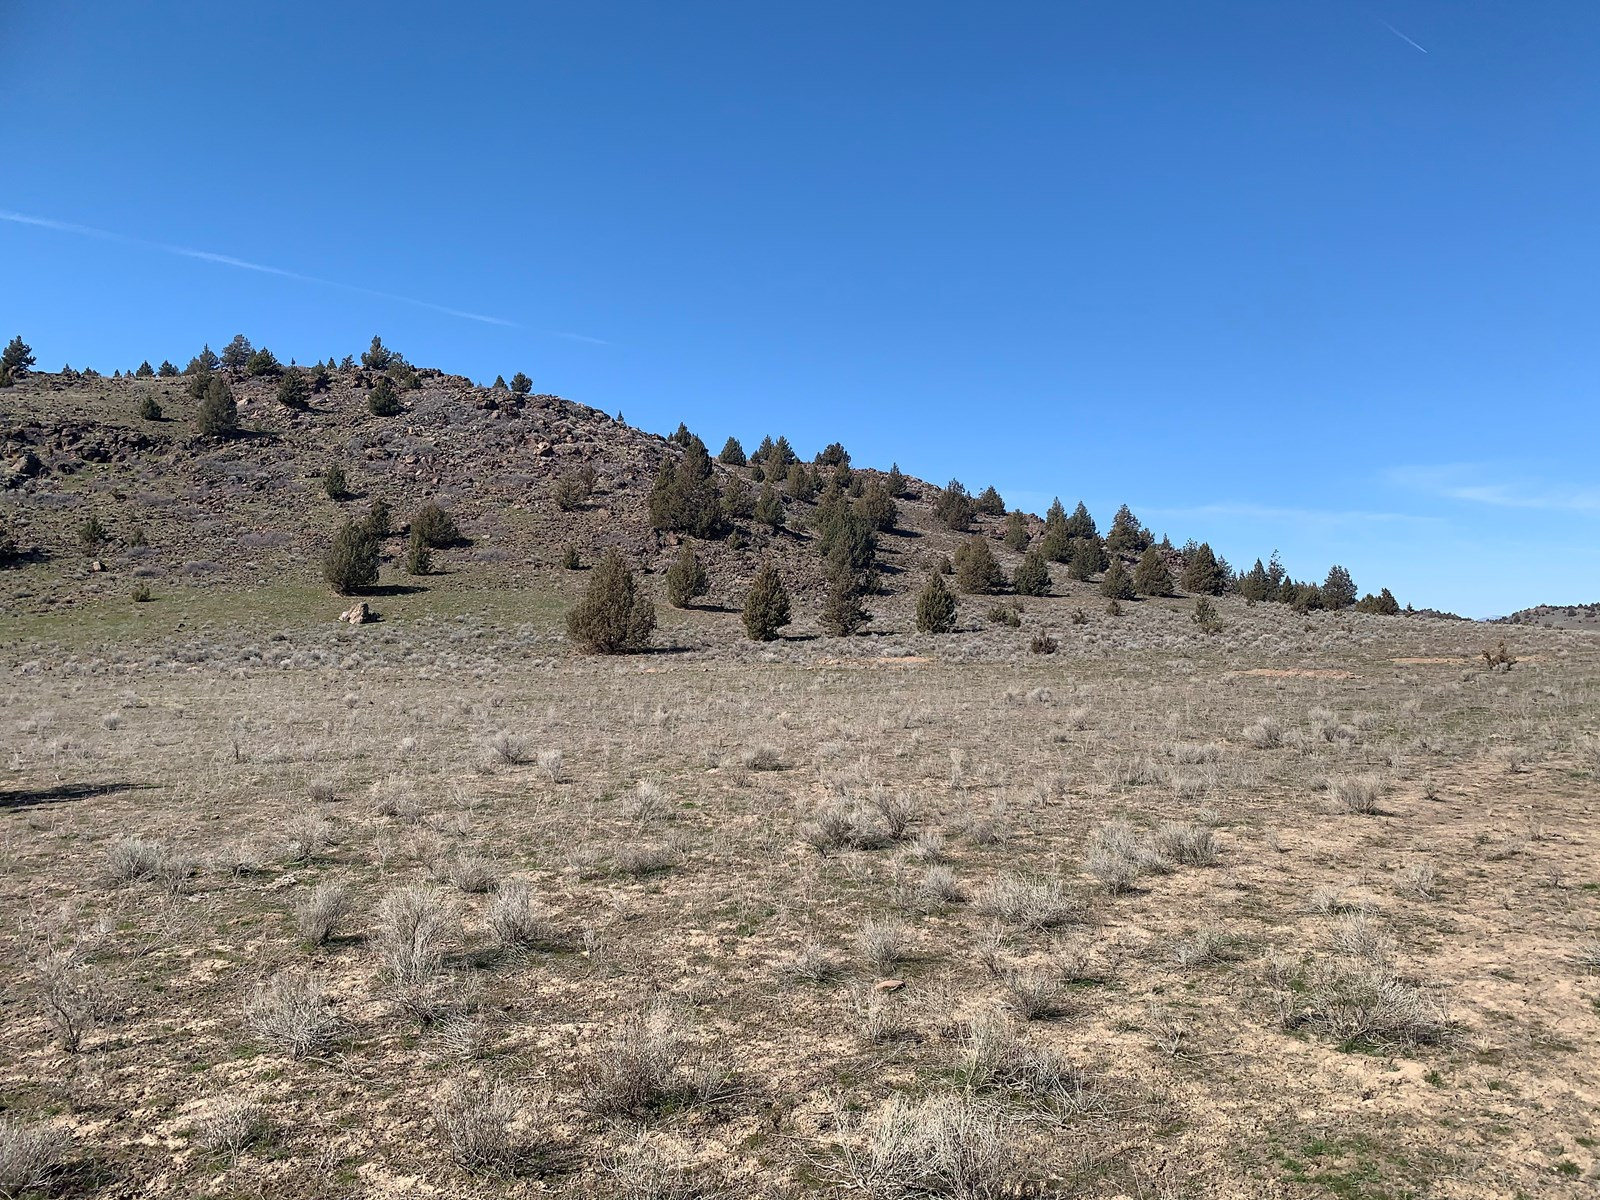 Land for Sale in Gazelle, Northern California